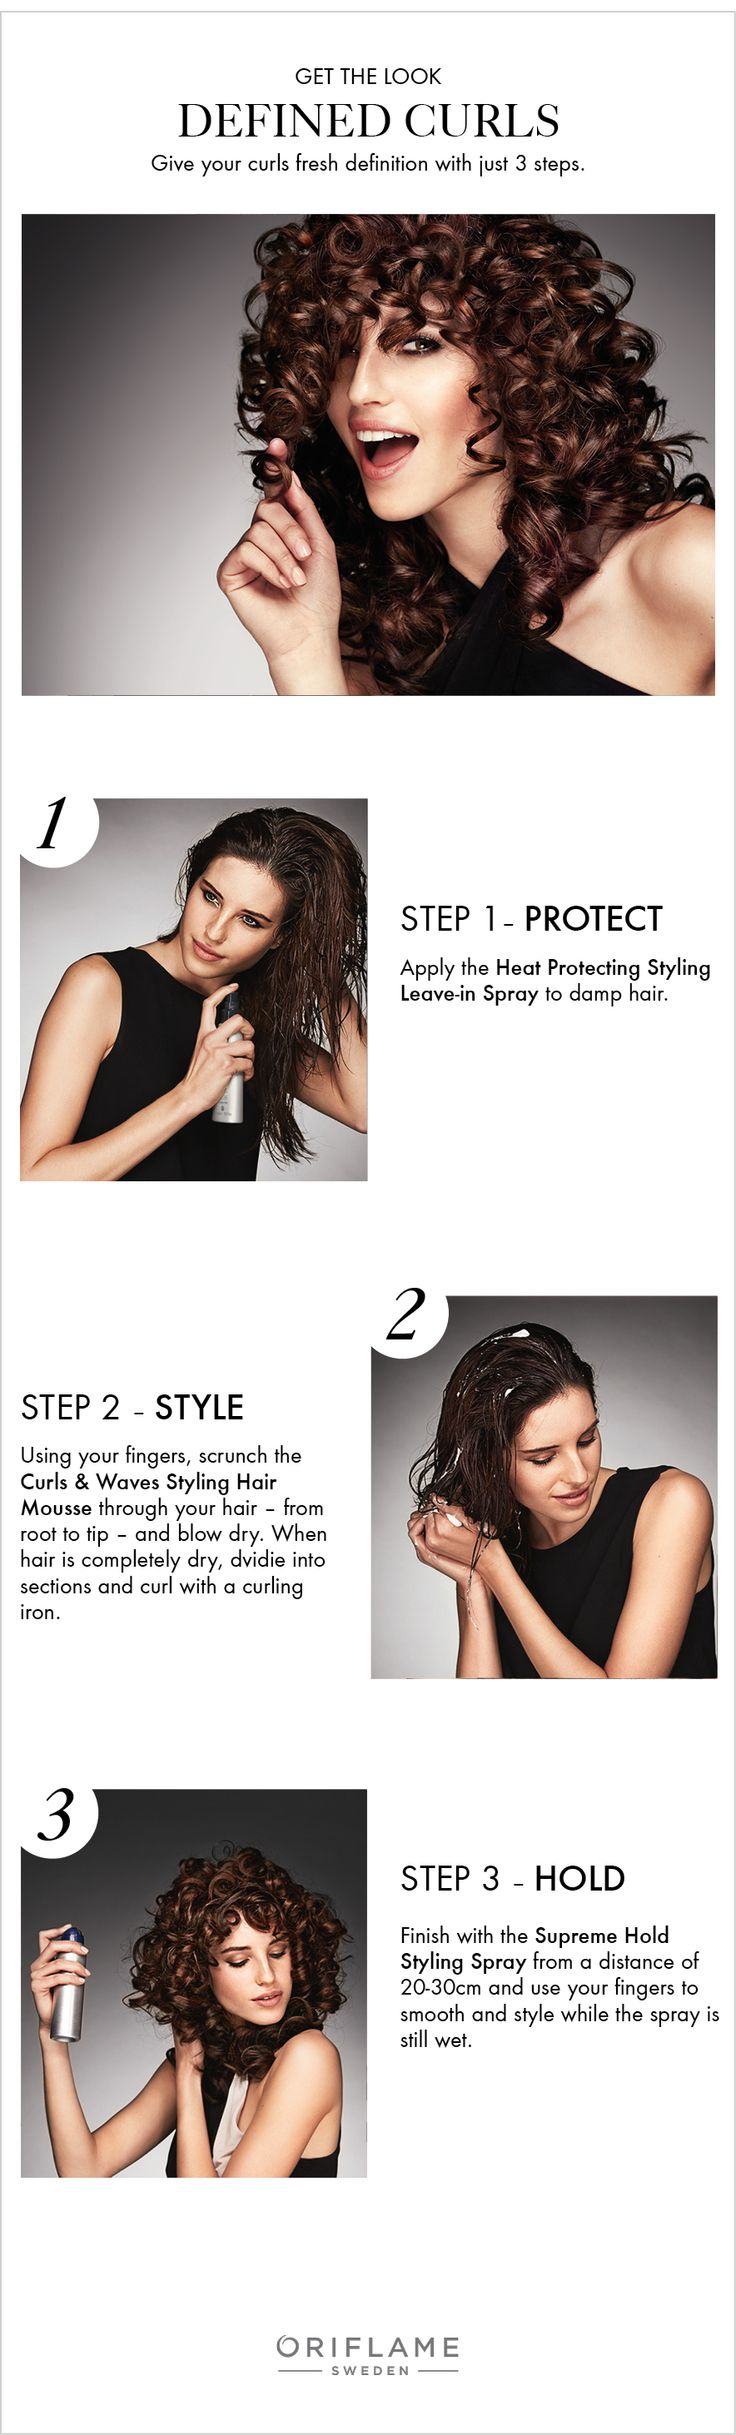 Want to flaunt those curls without worrying about a lot of frizz? We've created 3 easy-to-follow steps using HairX Styling products to give your curls fresh definition.